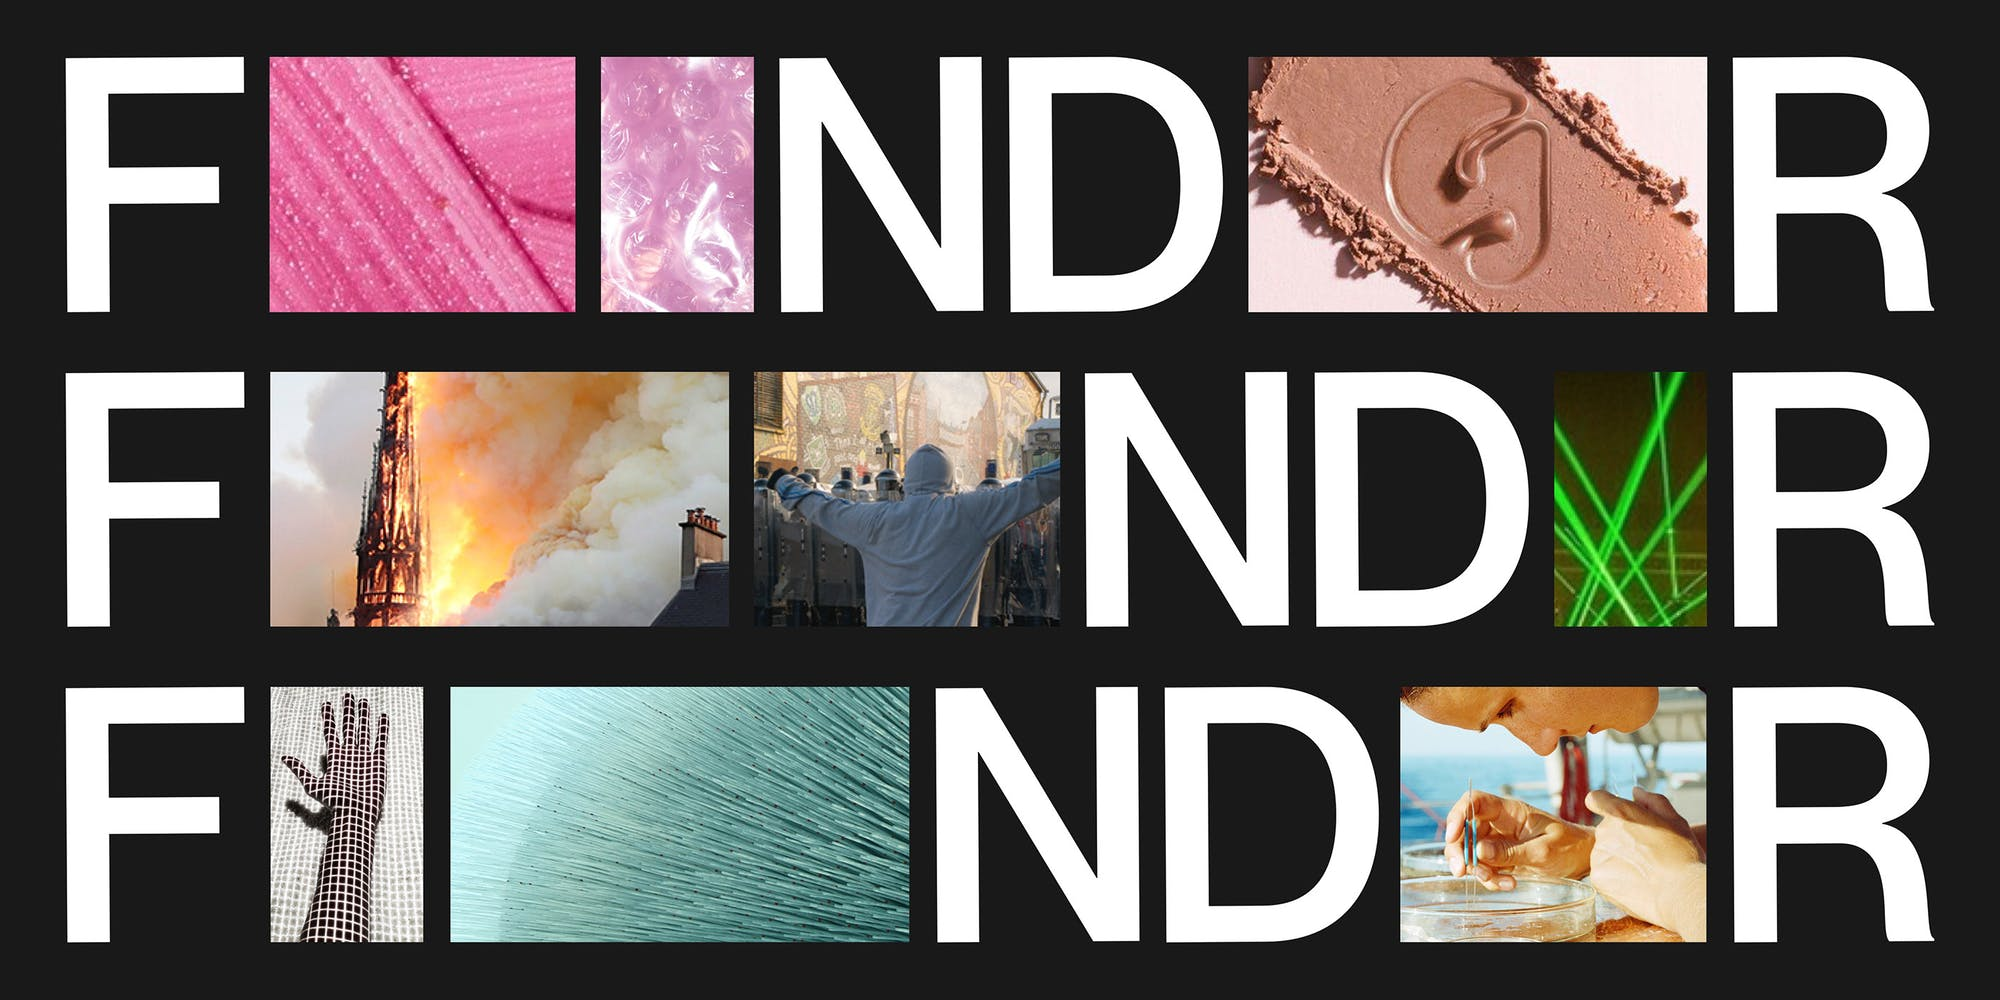 The FNDR logo repeated three times with pictures between the letters. First row has pink glittery images. The second row has a rocket ship taking off, a person in a hoodie speaking to a crowd, and green laser beams. The third row has a mesh hand, a teal abstract line picture, and a woman using tweezers to pick something out of a petri dish.